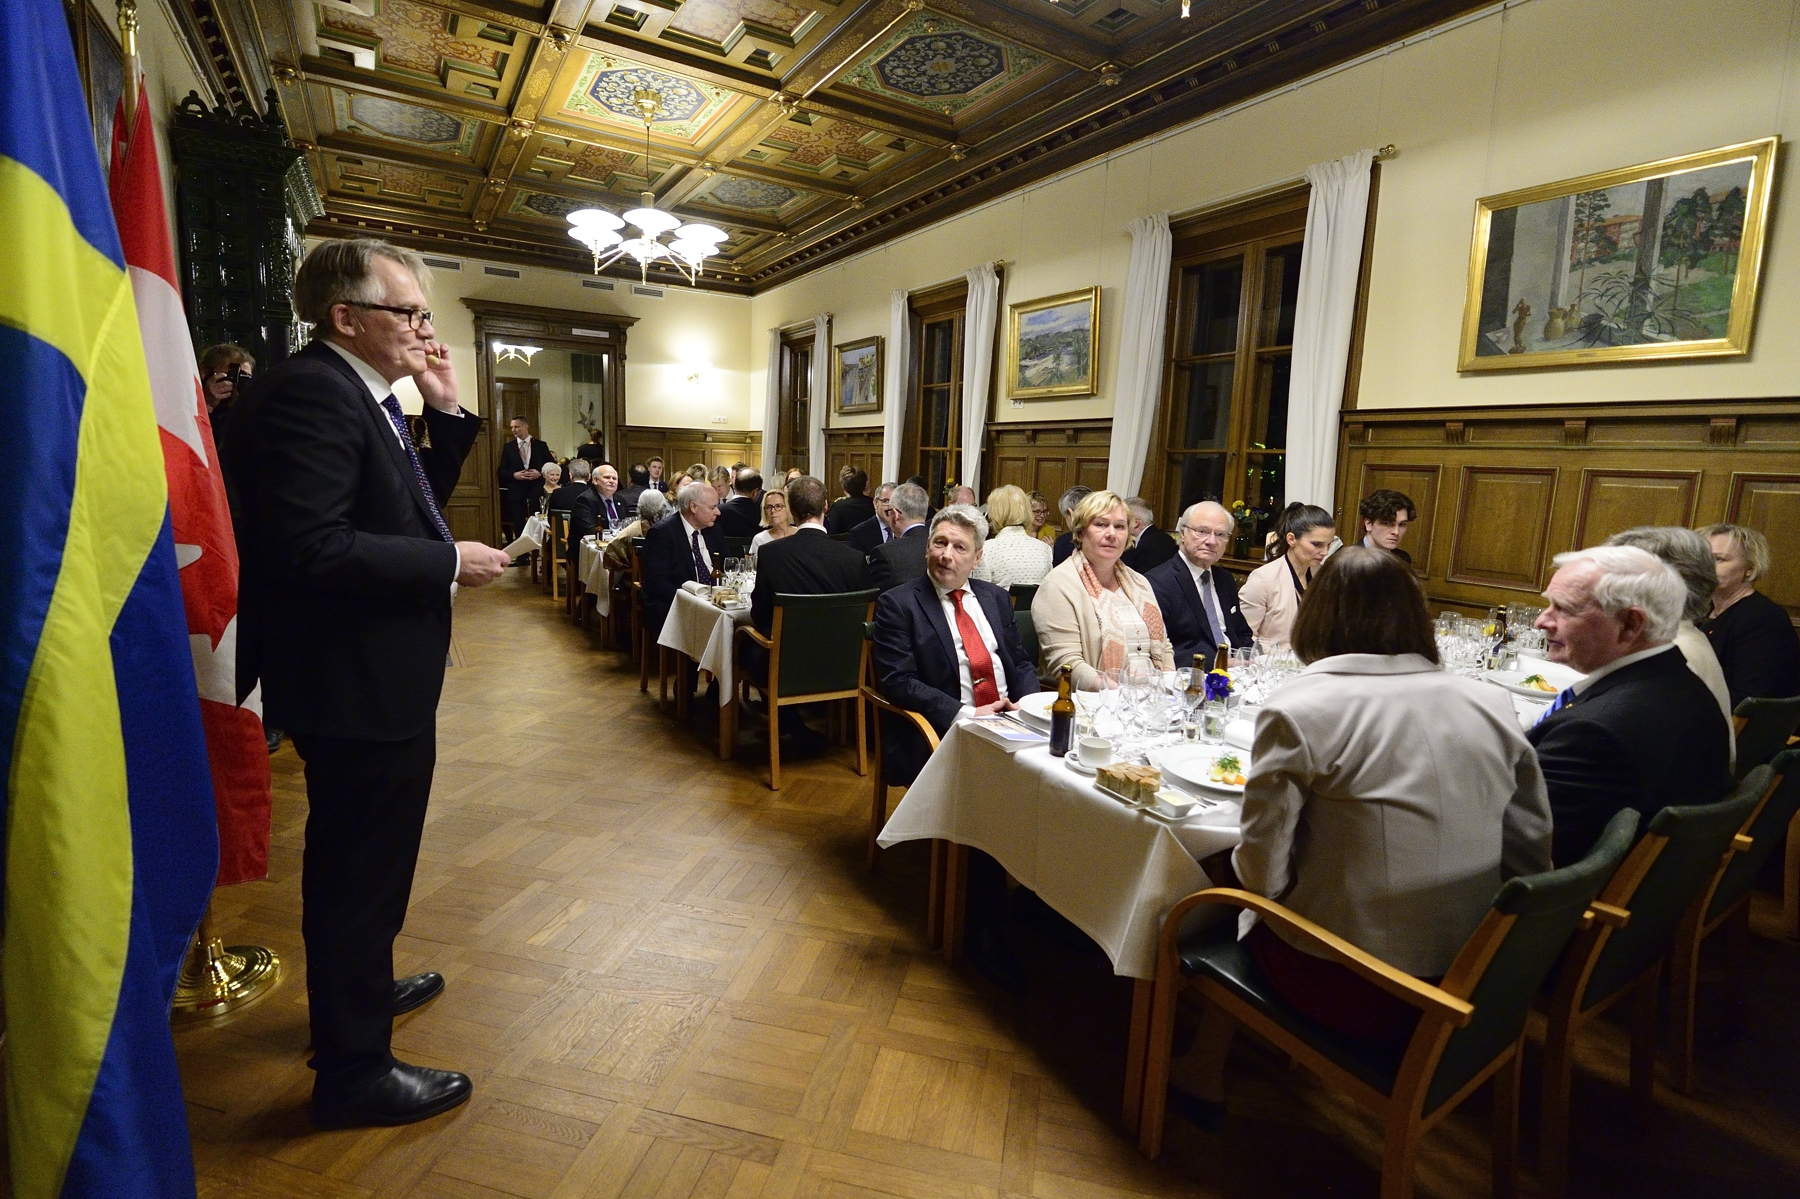 In the evening, His Excellency and Canadian delegates attended a dinner hosted by Mr. Torbjörn von Schantz, Vice-Chancellor of Lund University, to discuss academic links and opportunities. Lund University, which is celebrating its 350th anniversary, conducts student and staff exchanges and research collaborations with Canadian universities, including the University of British Columbia, McGill and Waterloo.